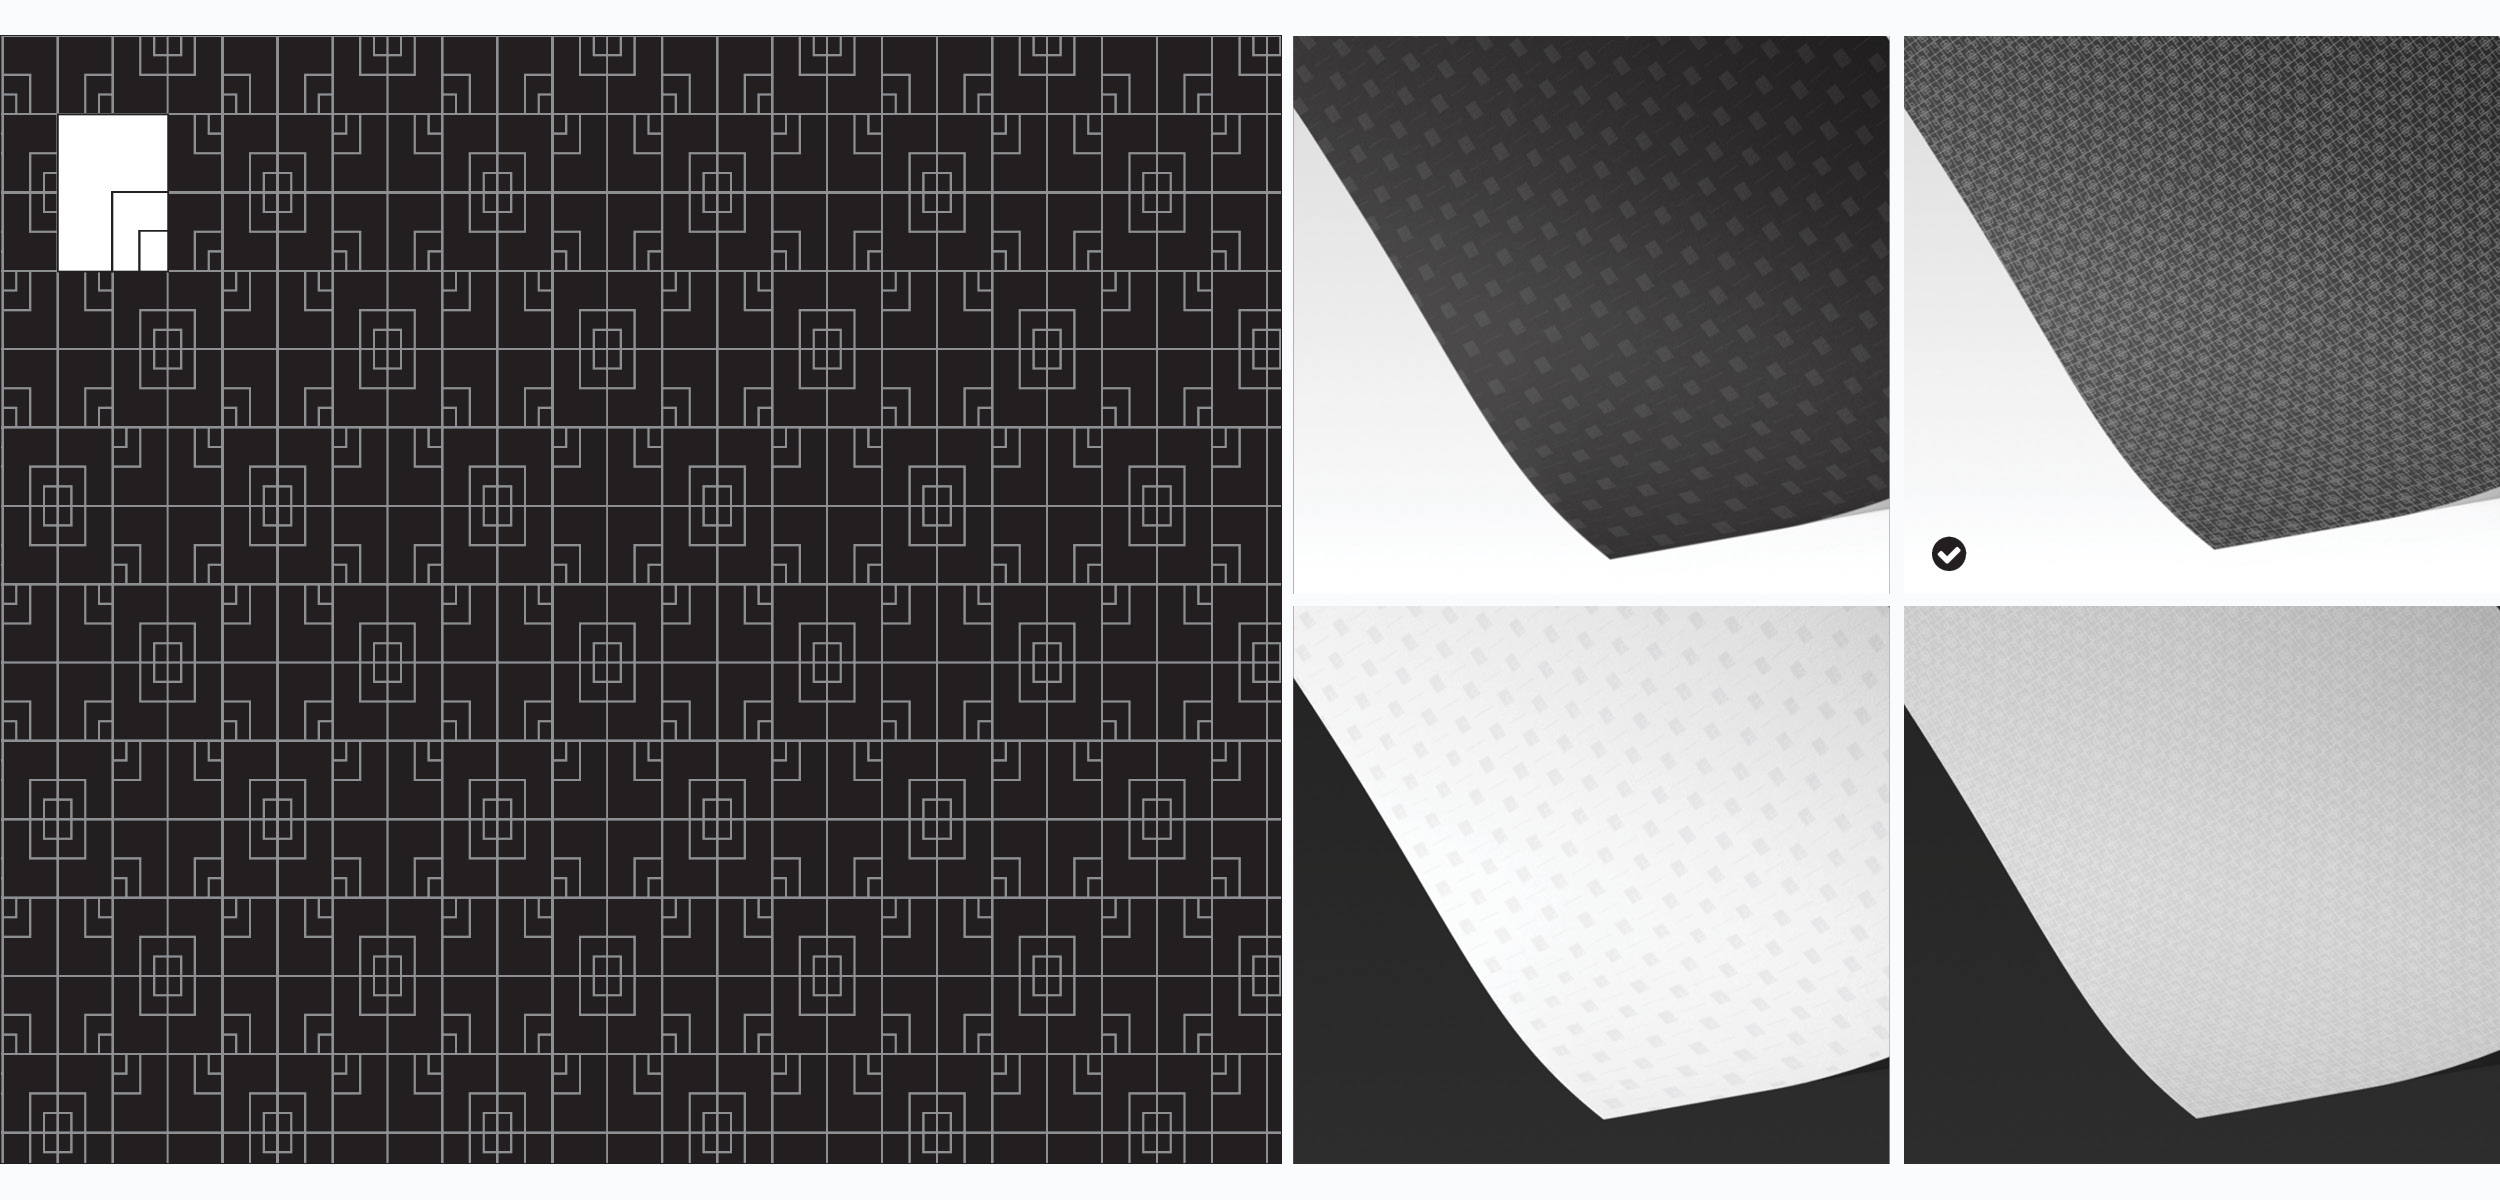 Pattern and the wrapping paper - Pattern that is used extensively throughout the packaging system is constructed from a reversed logotype and strikes the intricate balance between the rhythm of the elements and visual variations, thus inviting the viewer to spend sometime figuring it out.